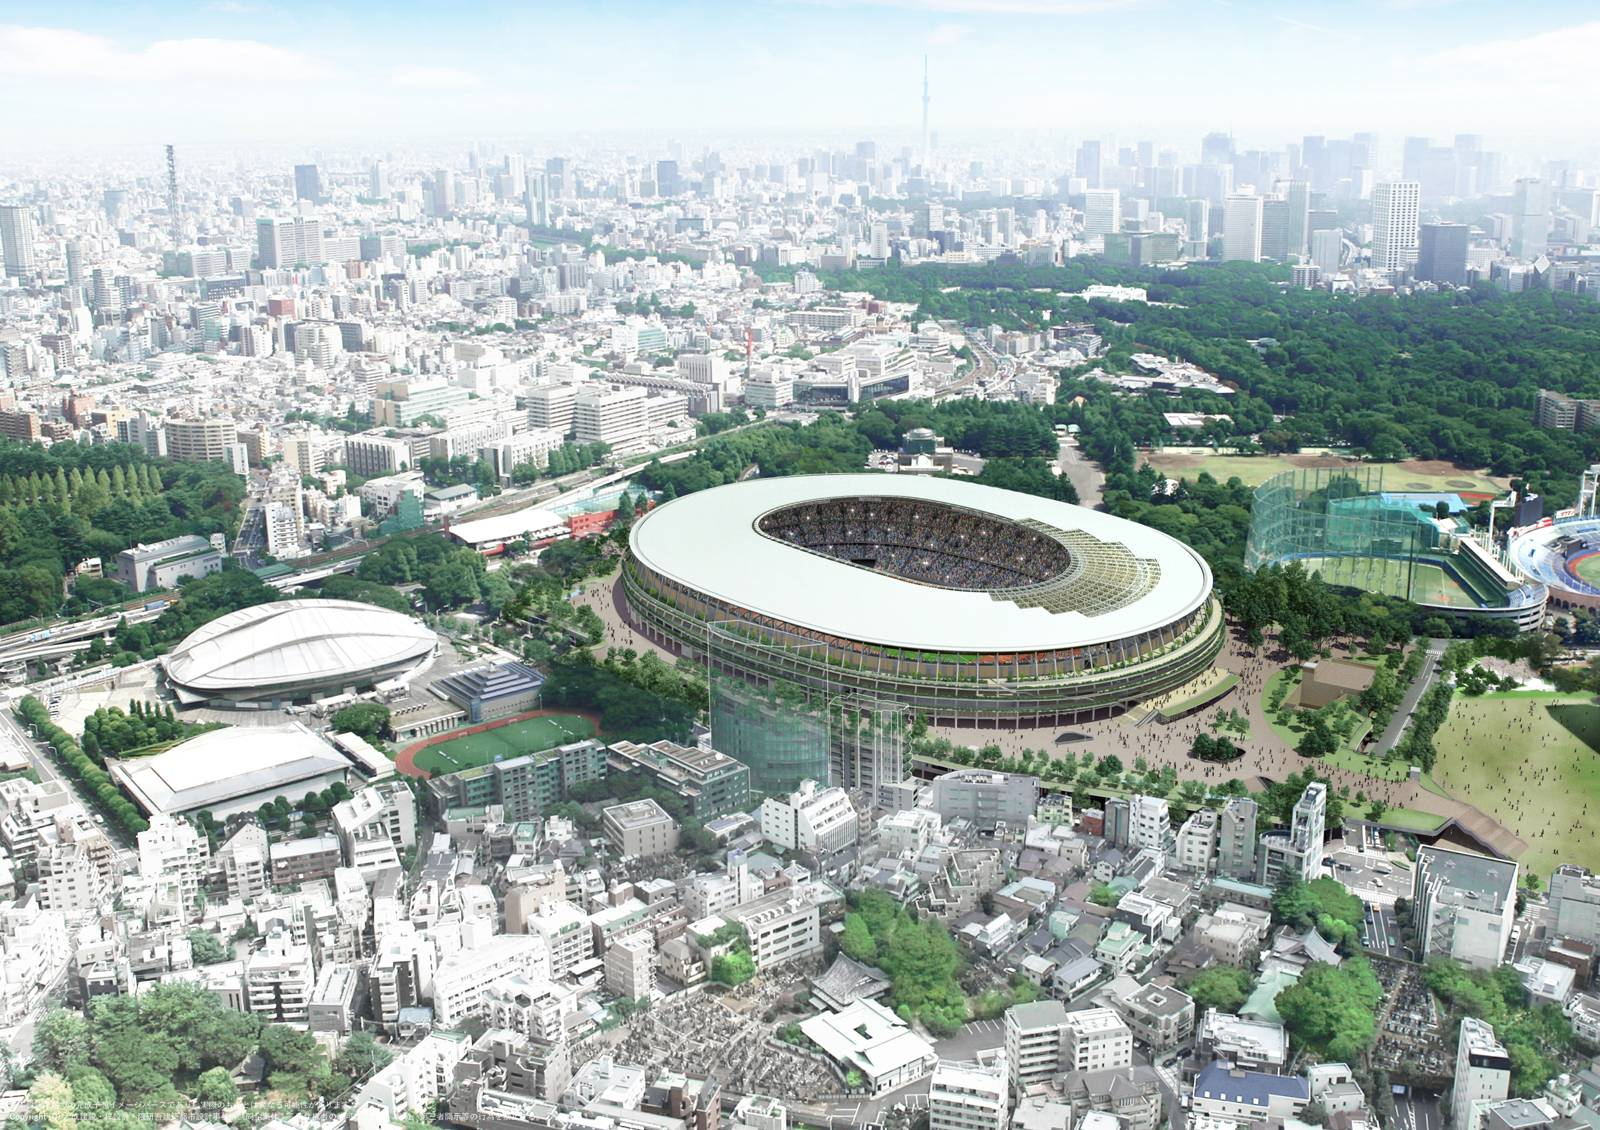 Aerial rendering of the National Stadium in Tokyo, surrounded by low-rise buildings